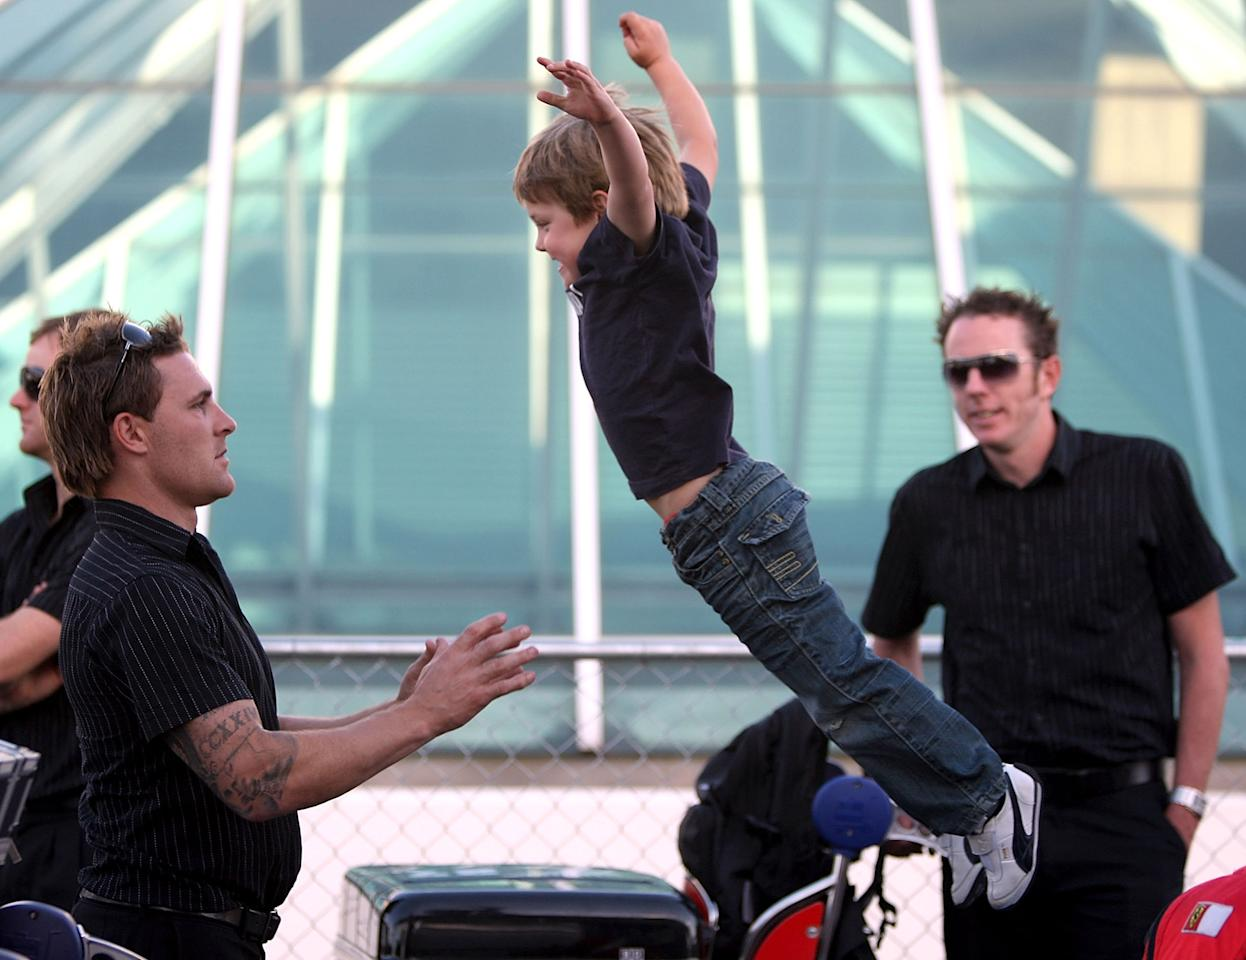 SYDNEY, AUSTRALIA - NOVEMBER 10:  Brendan McCullum of  New Zealand's son Riley jumps in to his father's arms as they wait for the bus at Sydney International Airport on November 10, 2008 in Sydney, Australia. The New Zealand team will play five Test matches,  five one day internationals and one Twenty20 international match during their tour of Australia.  (Photo by Ezra Shaw/Getty Images)